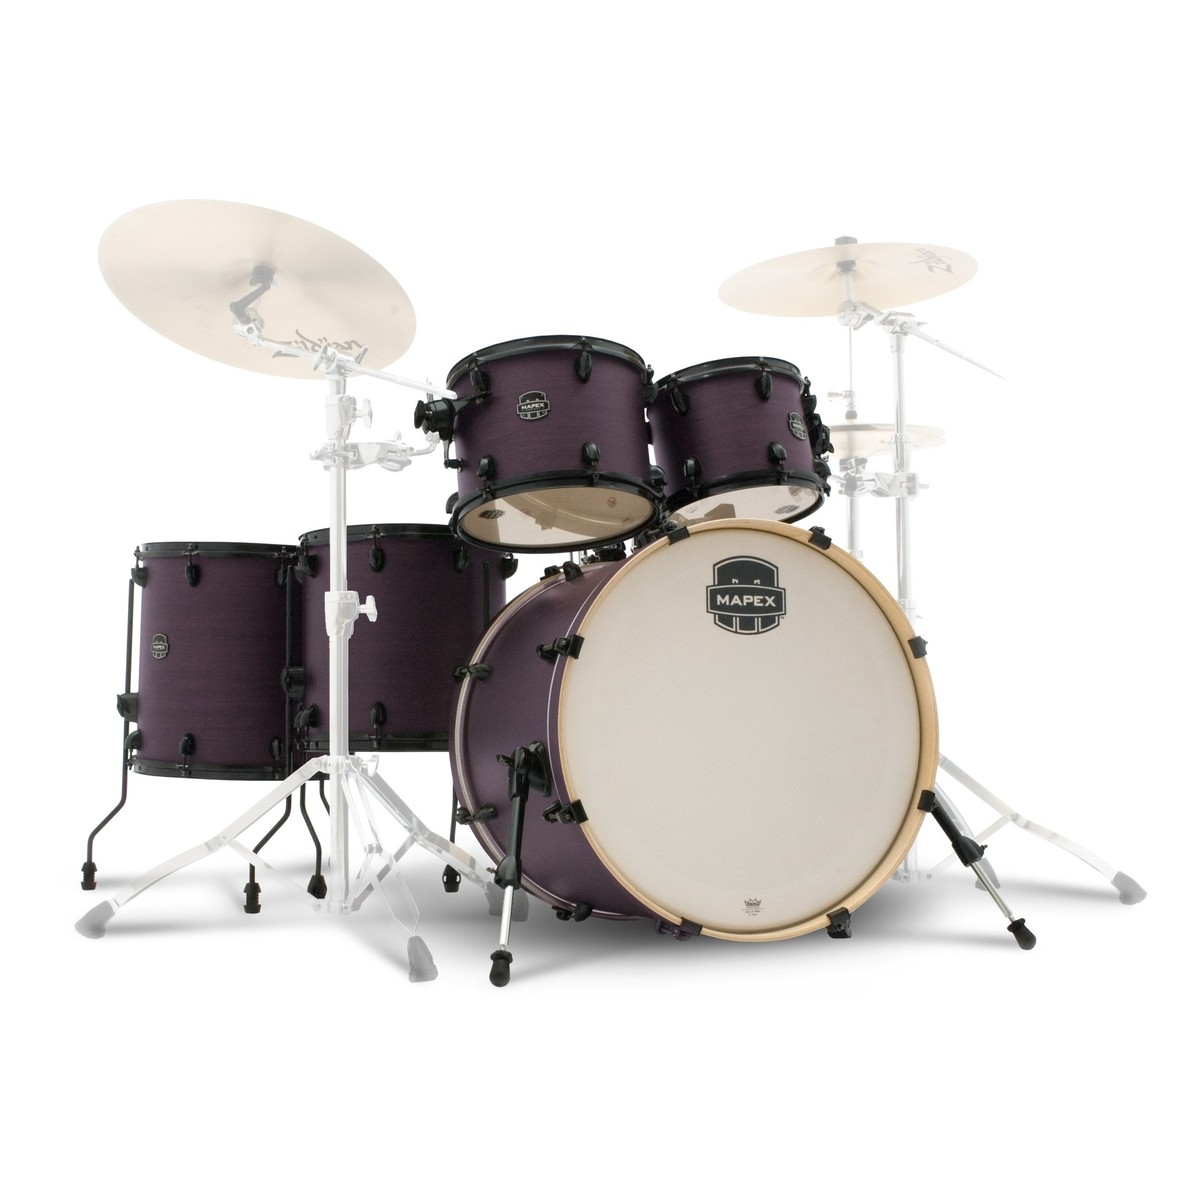 Acoustic Drum Kits MAPEX ARMORY SERIES 6 PIECE DRUM KIT